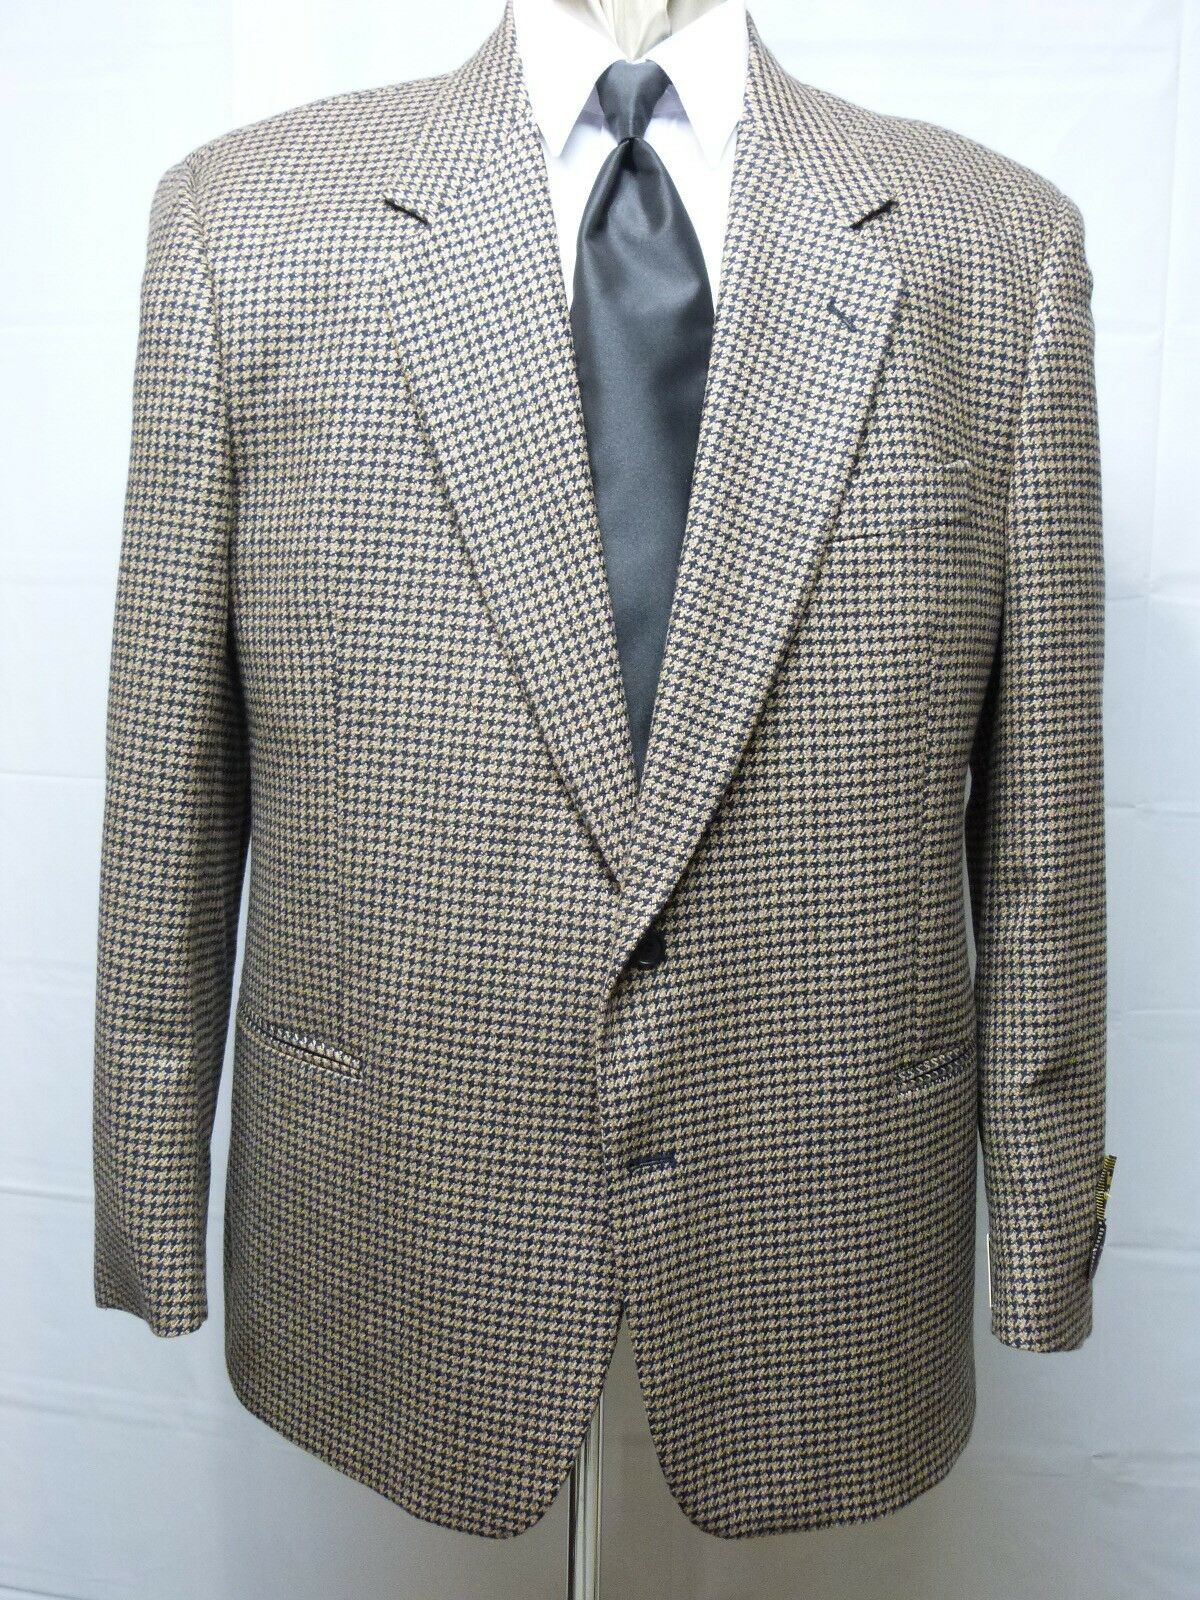 Two Button Sport Coat, 46R Made in , Wool/Cashmere, Tan, NWT